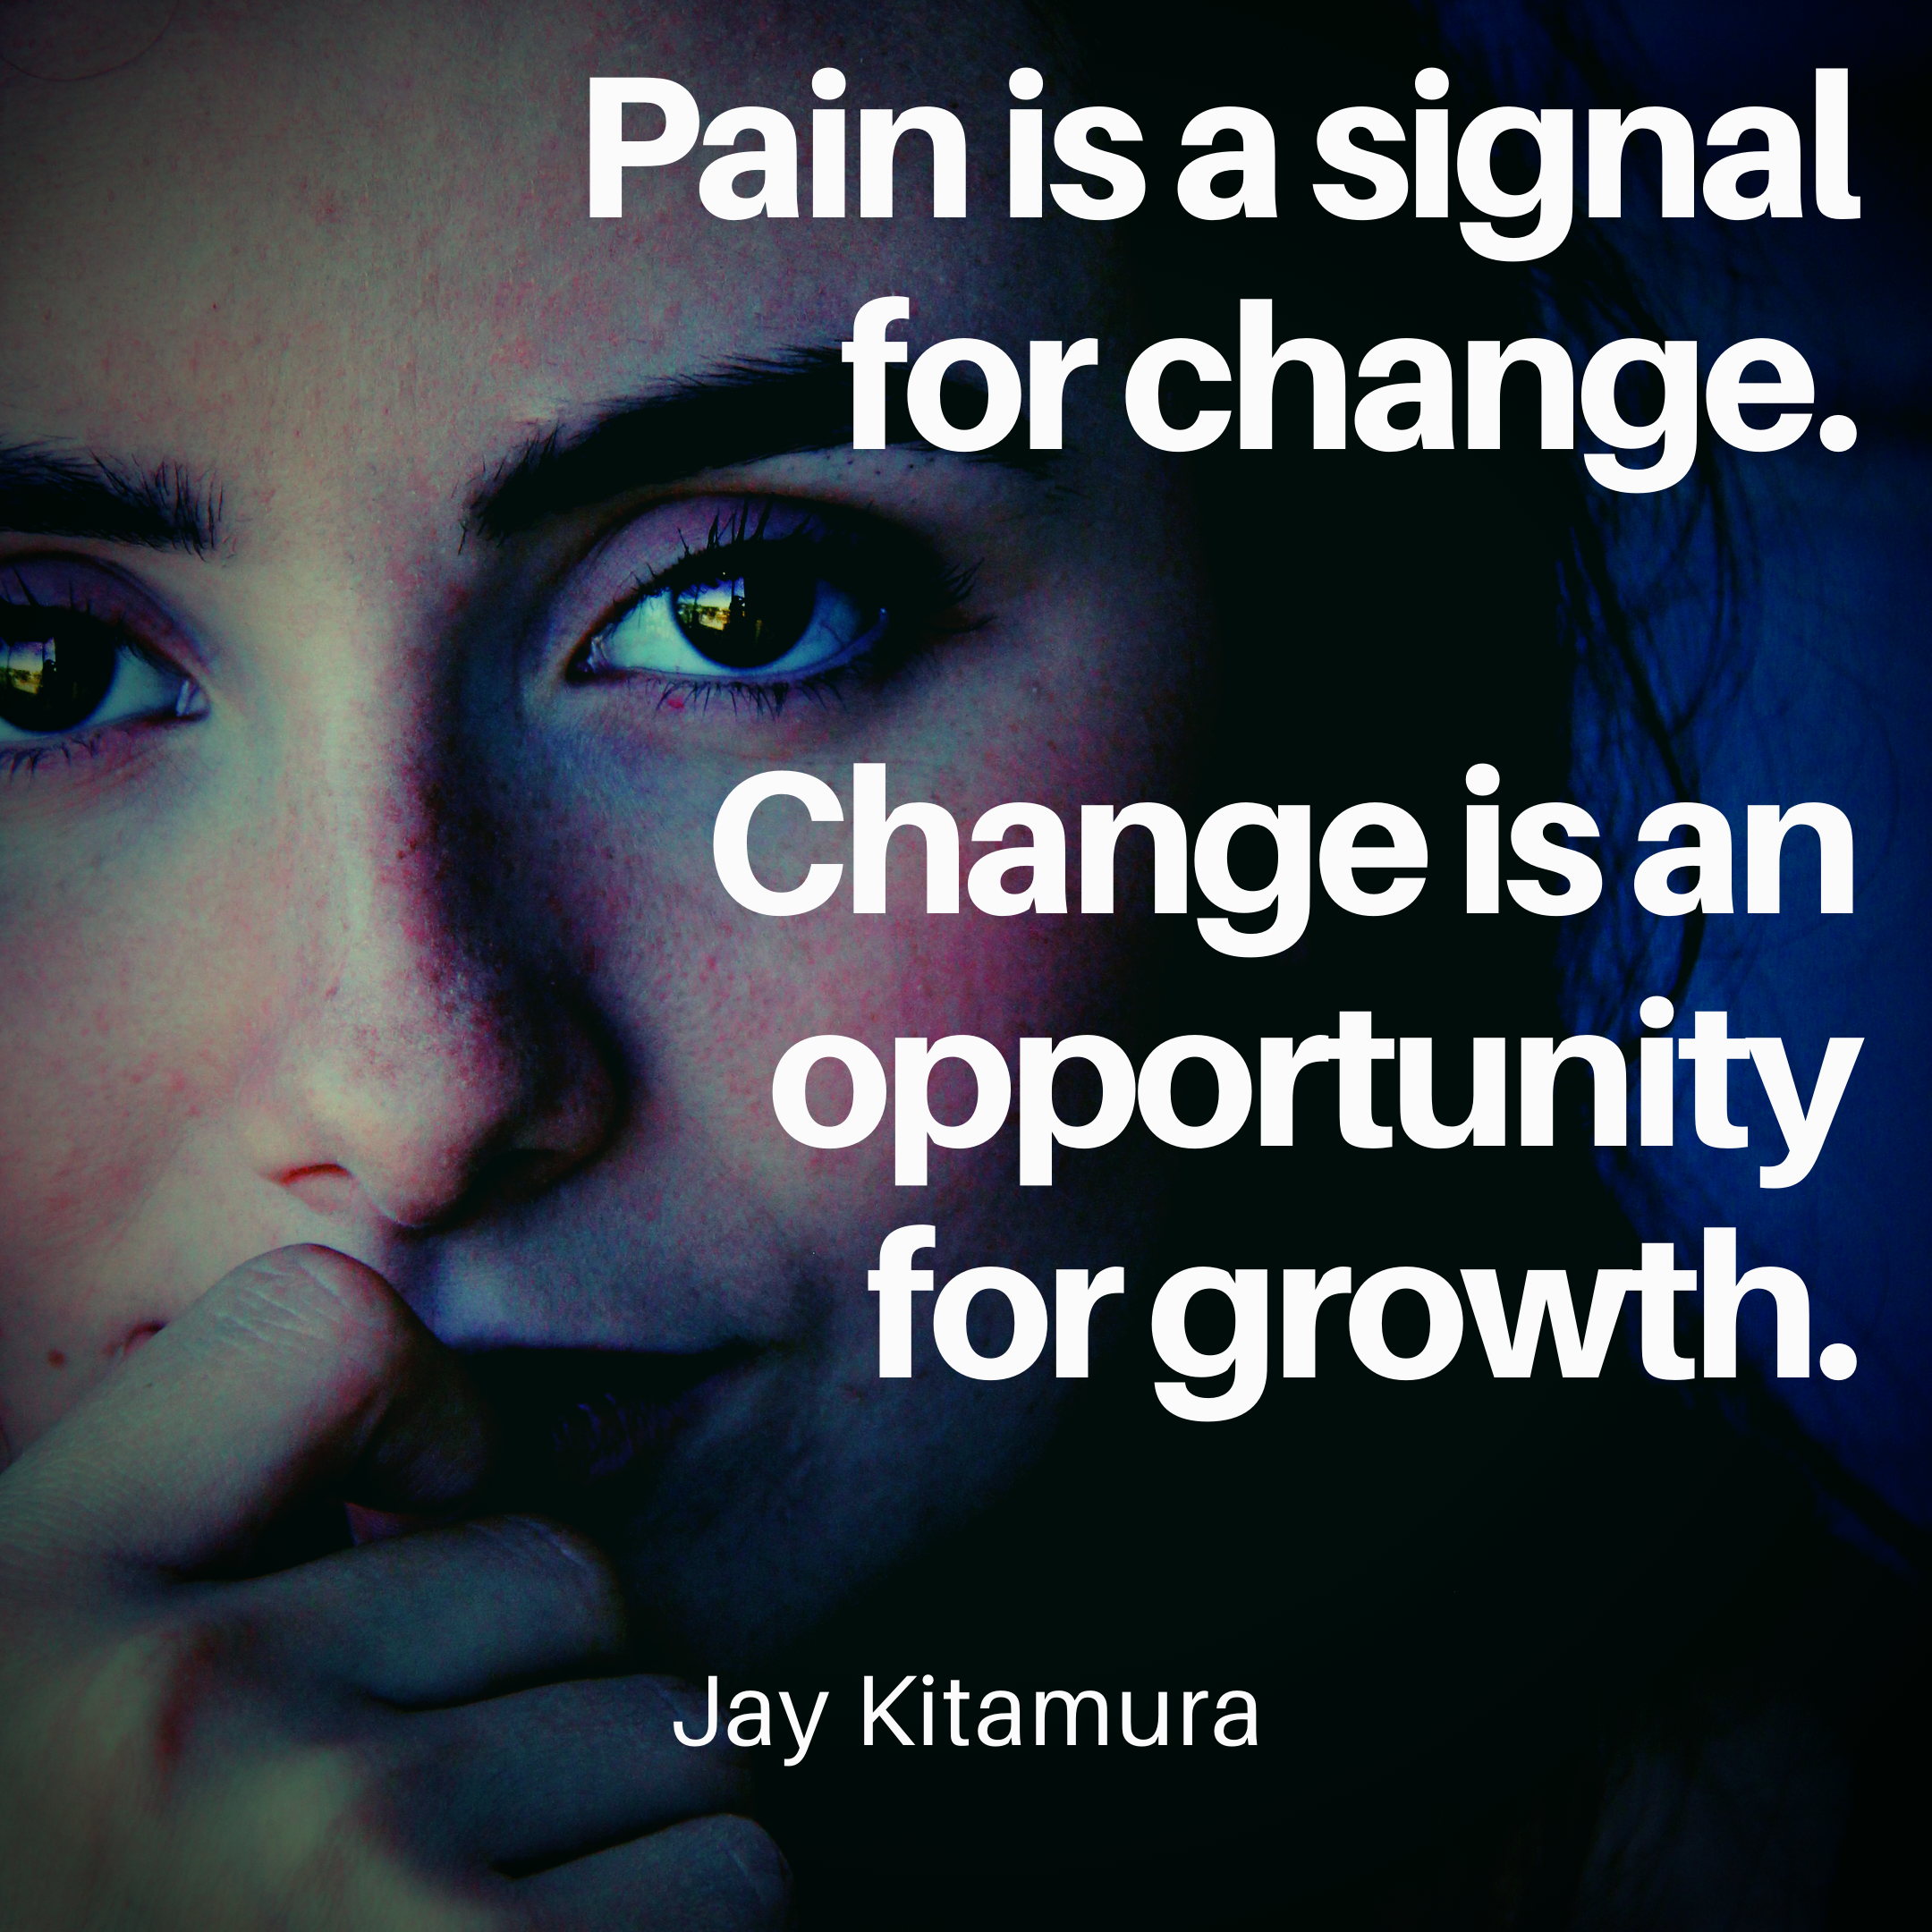 [Image] Pain is a signal for change.